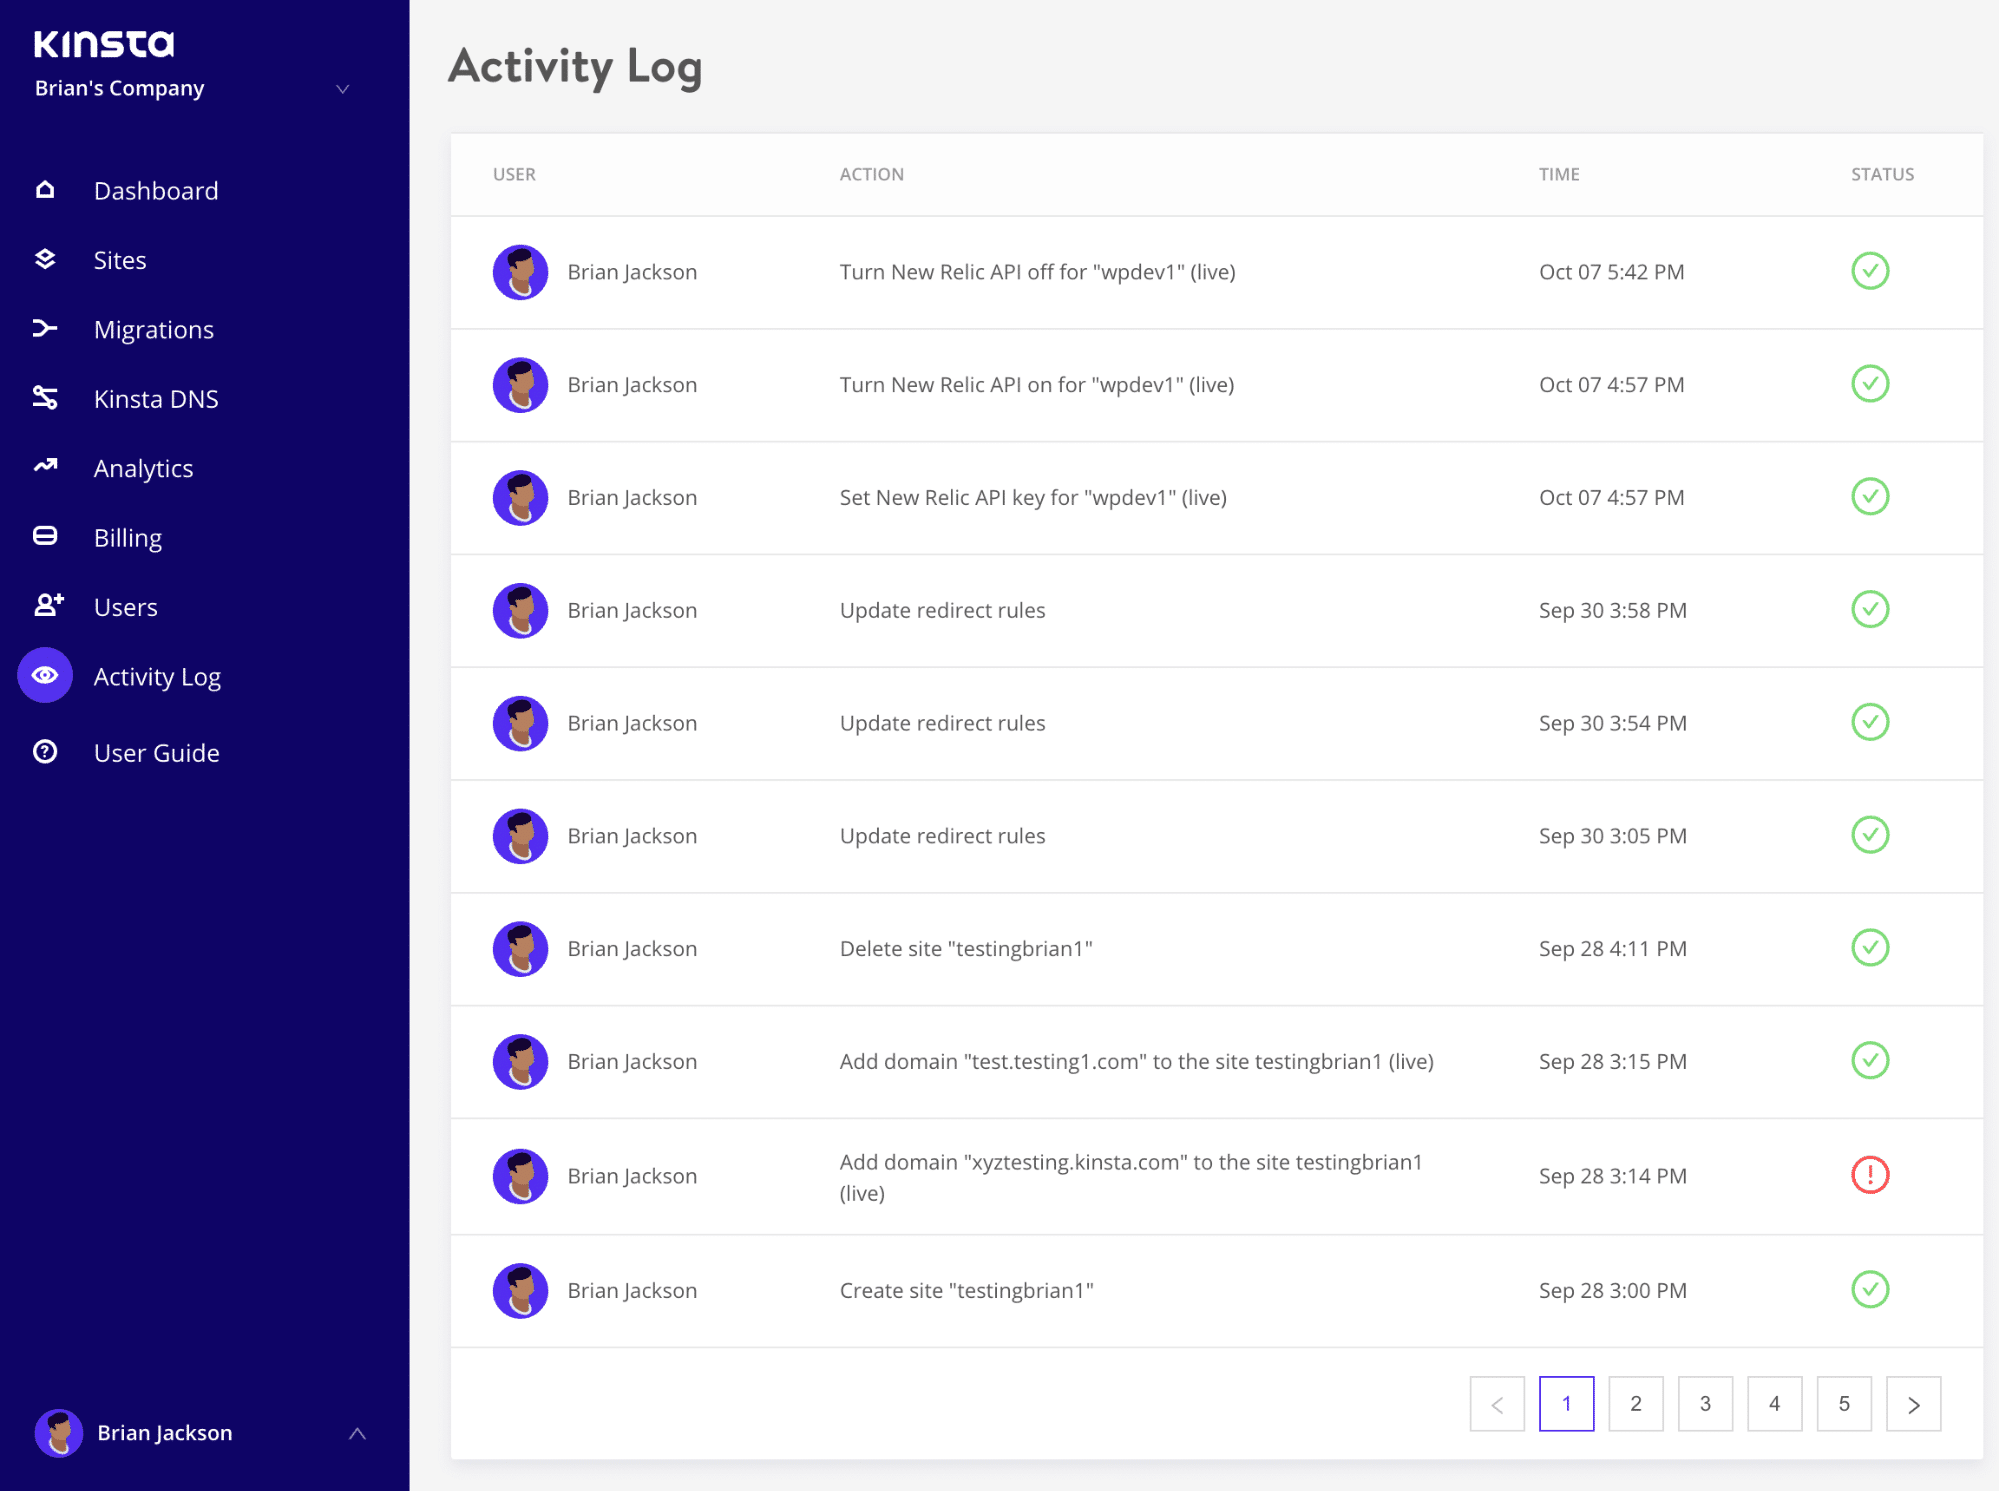 Kinsta Activity Log 8 weeks